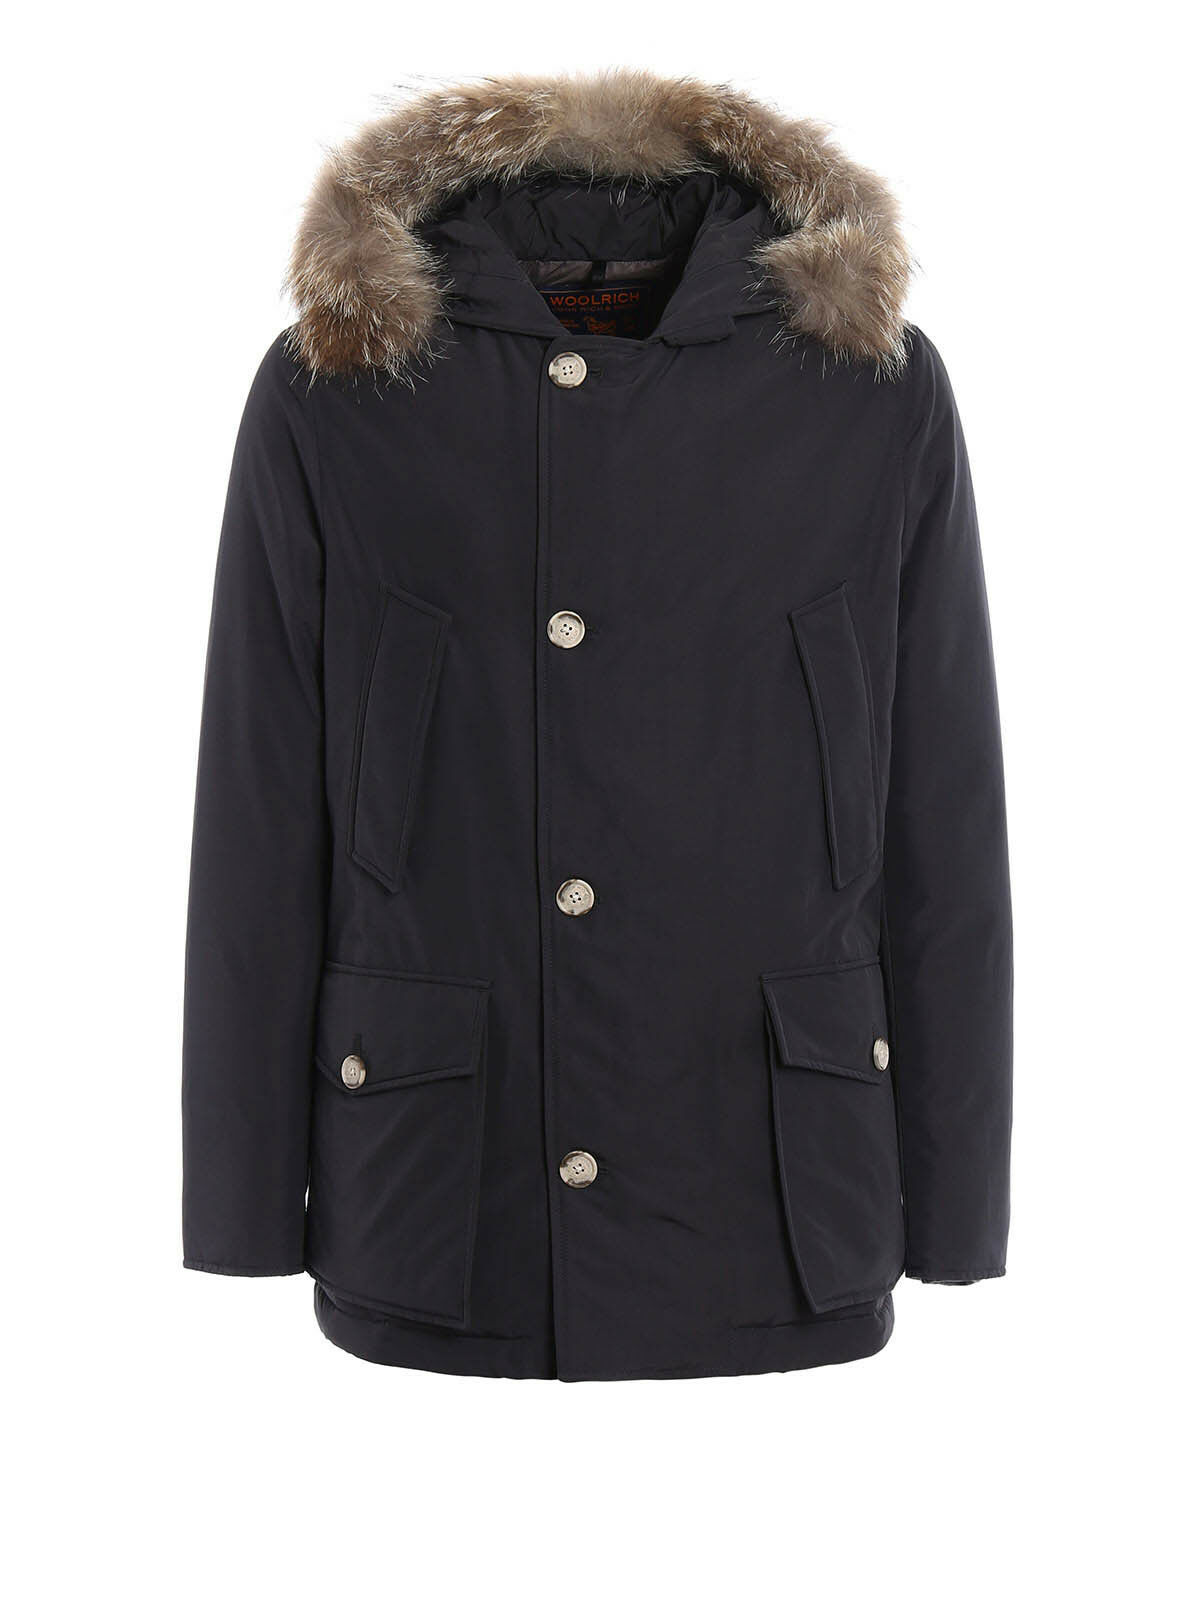 WOOLRICH ANORAK PARKA (Slim Fit) UOMO colore BLU - WOCPS2739CN03.DKN